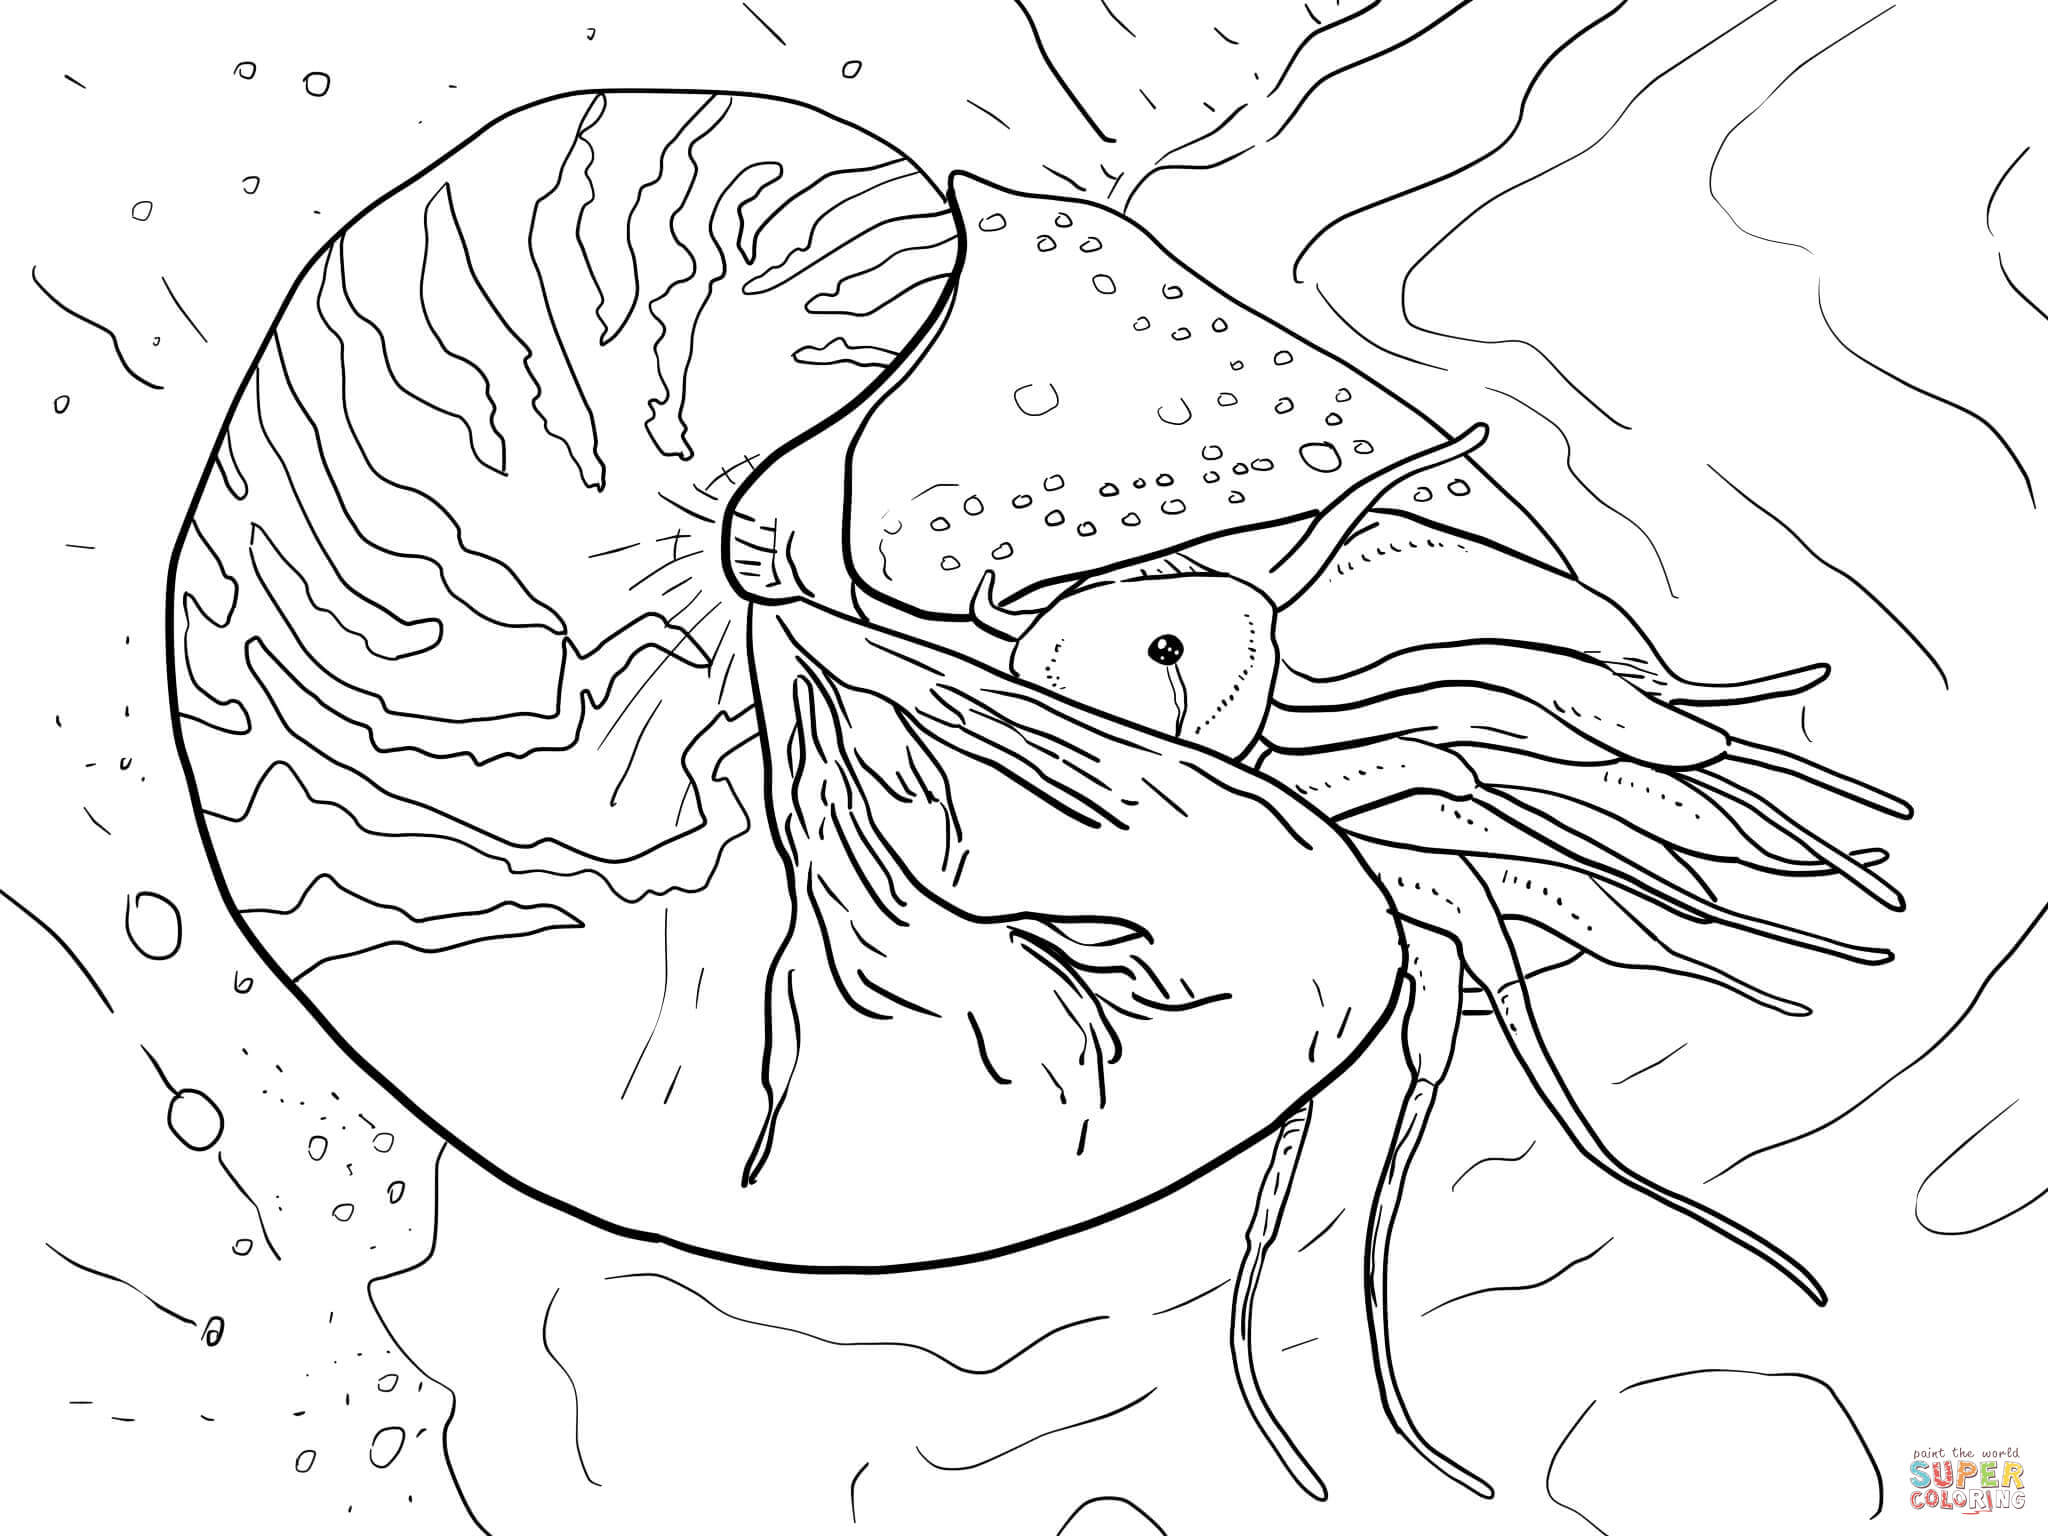 Squid Coloring Pages Vampire Squid Coloring Page Free Printable Coloring Pages Birijus Com